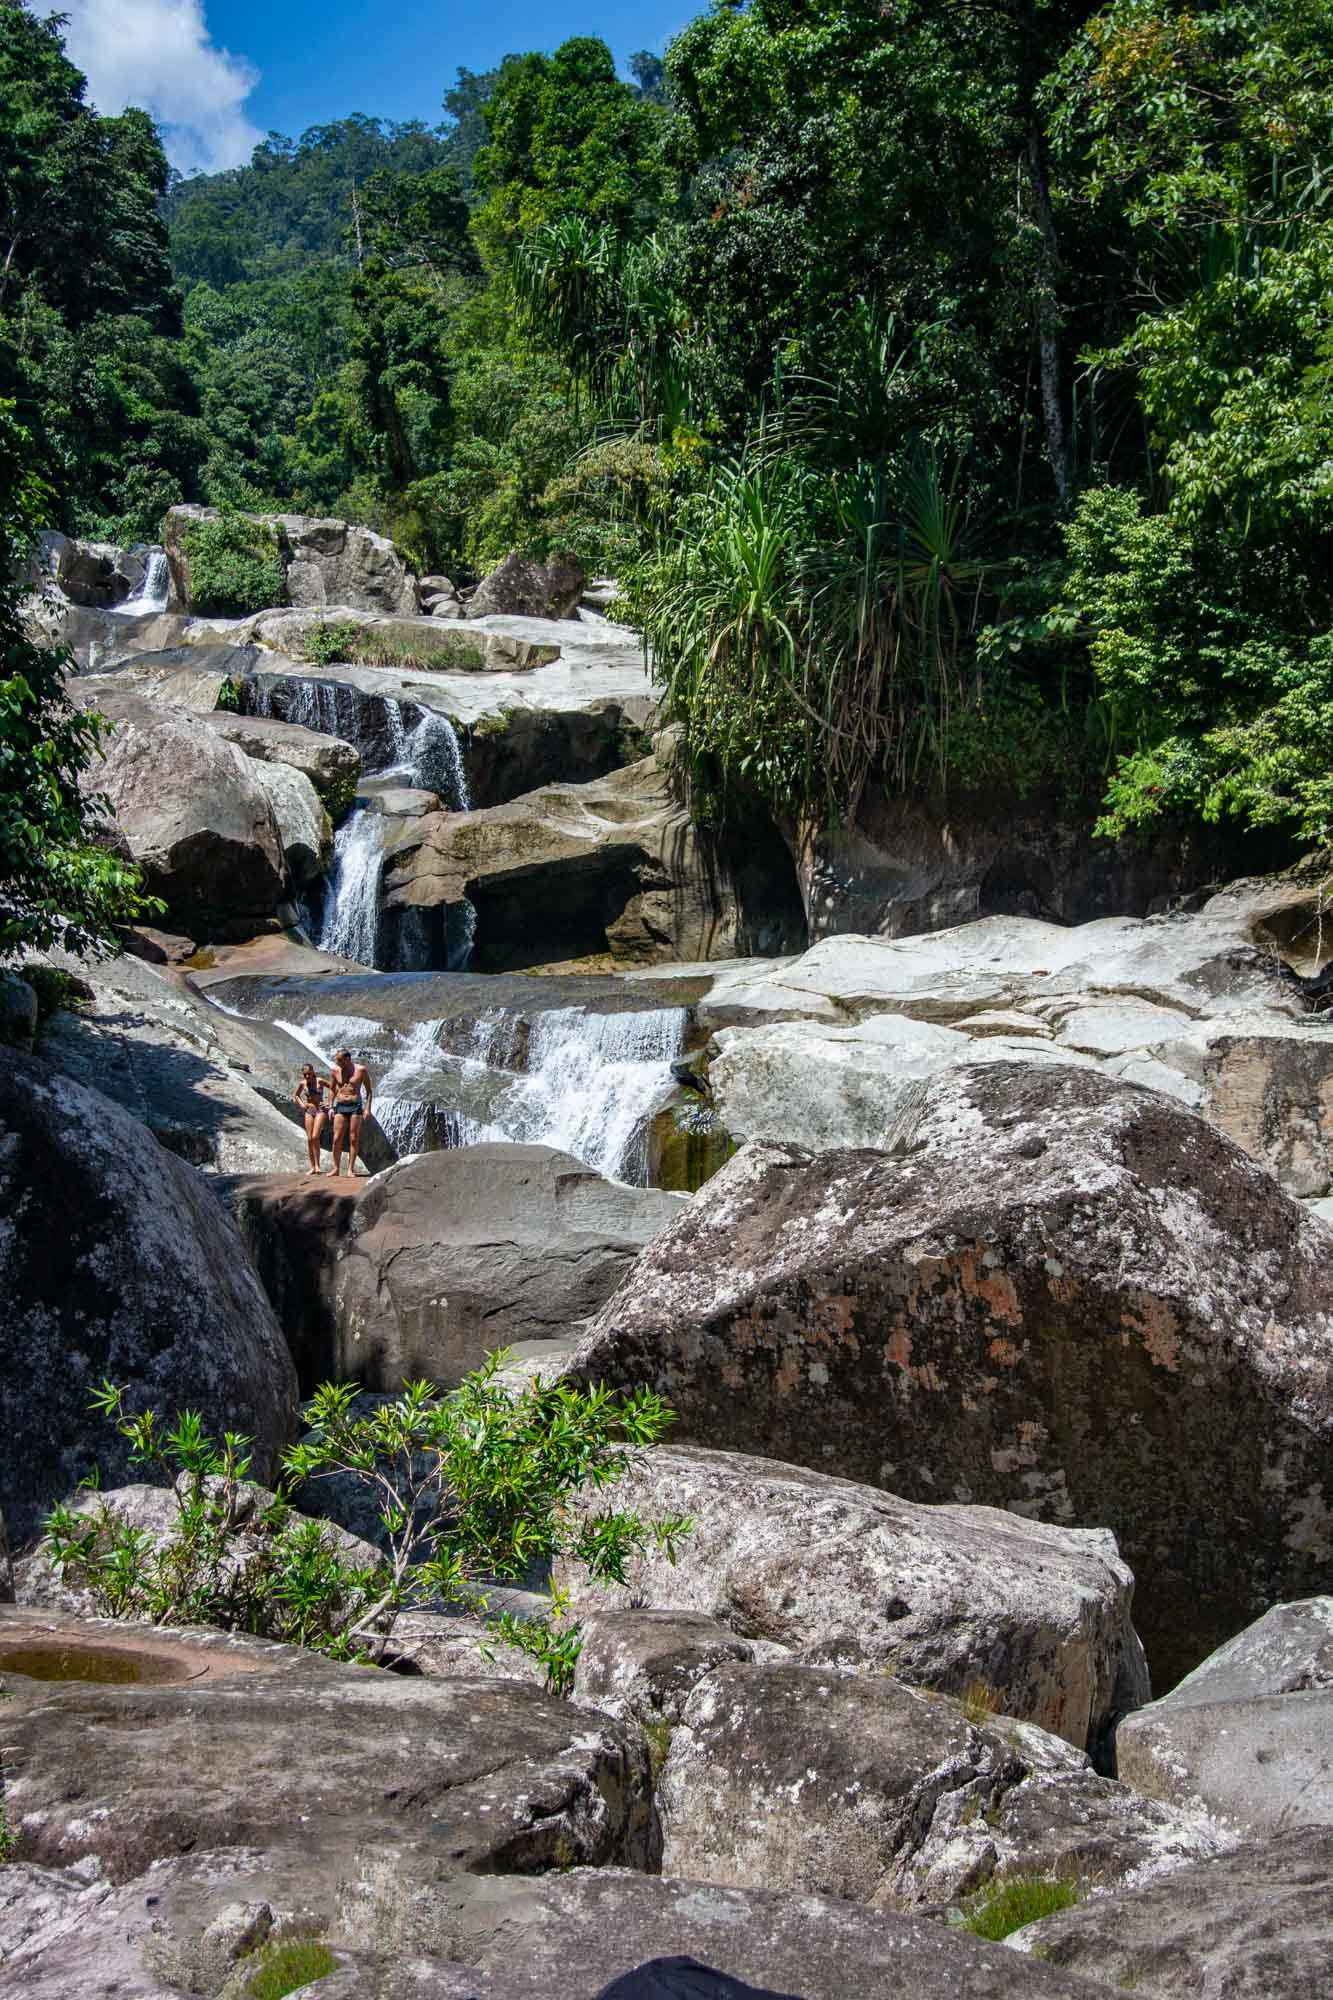 The Sungai Pinang Waterfall